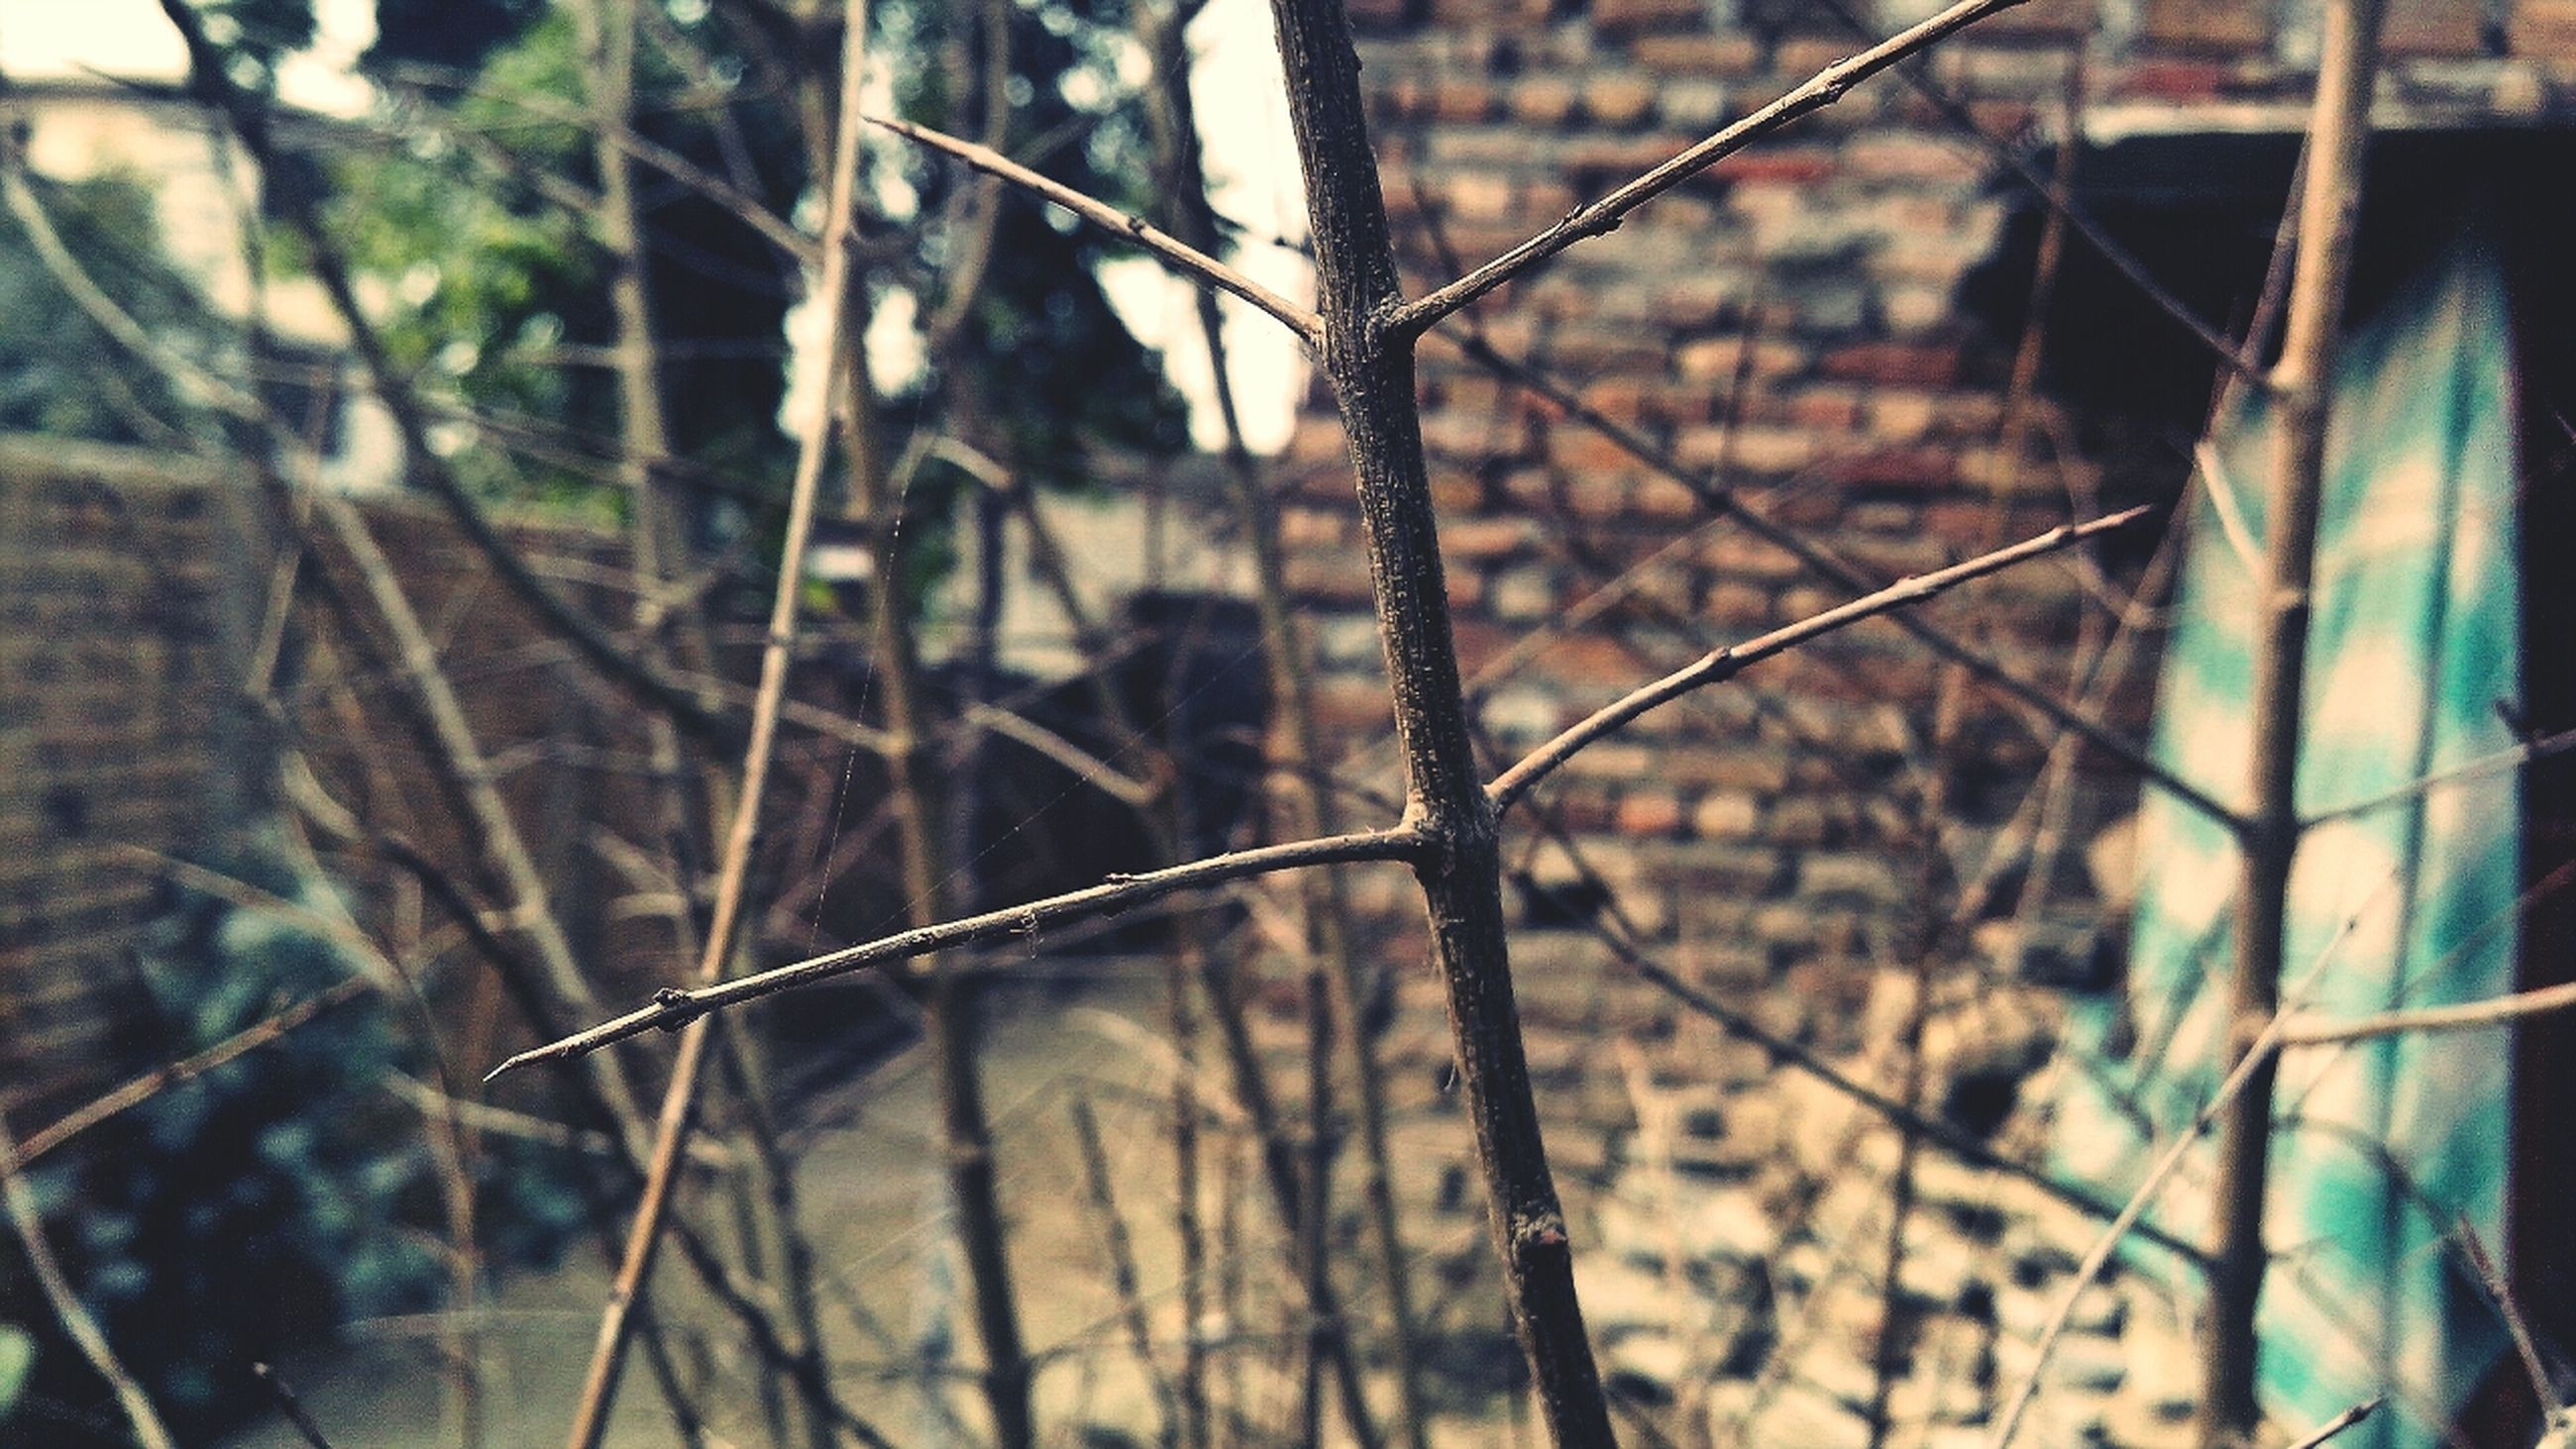 chainlink fence, focus on foreground, fence, protection, metal, close-up, safety, security, barbed wire, selective focus, day, pattern, outdoors, branch, no people, metallic, spider web, nature, tree, sunlight